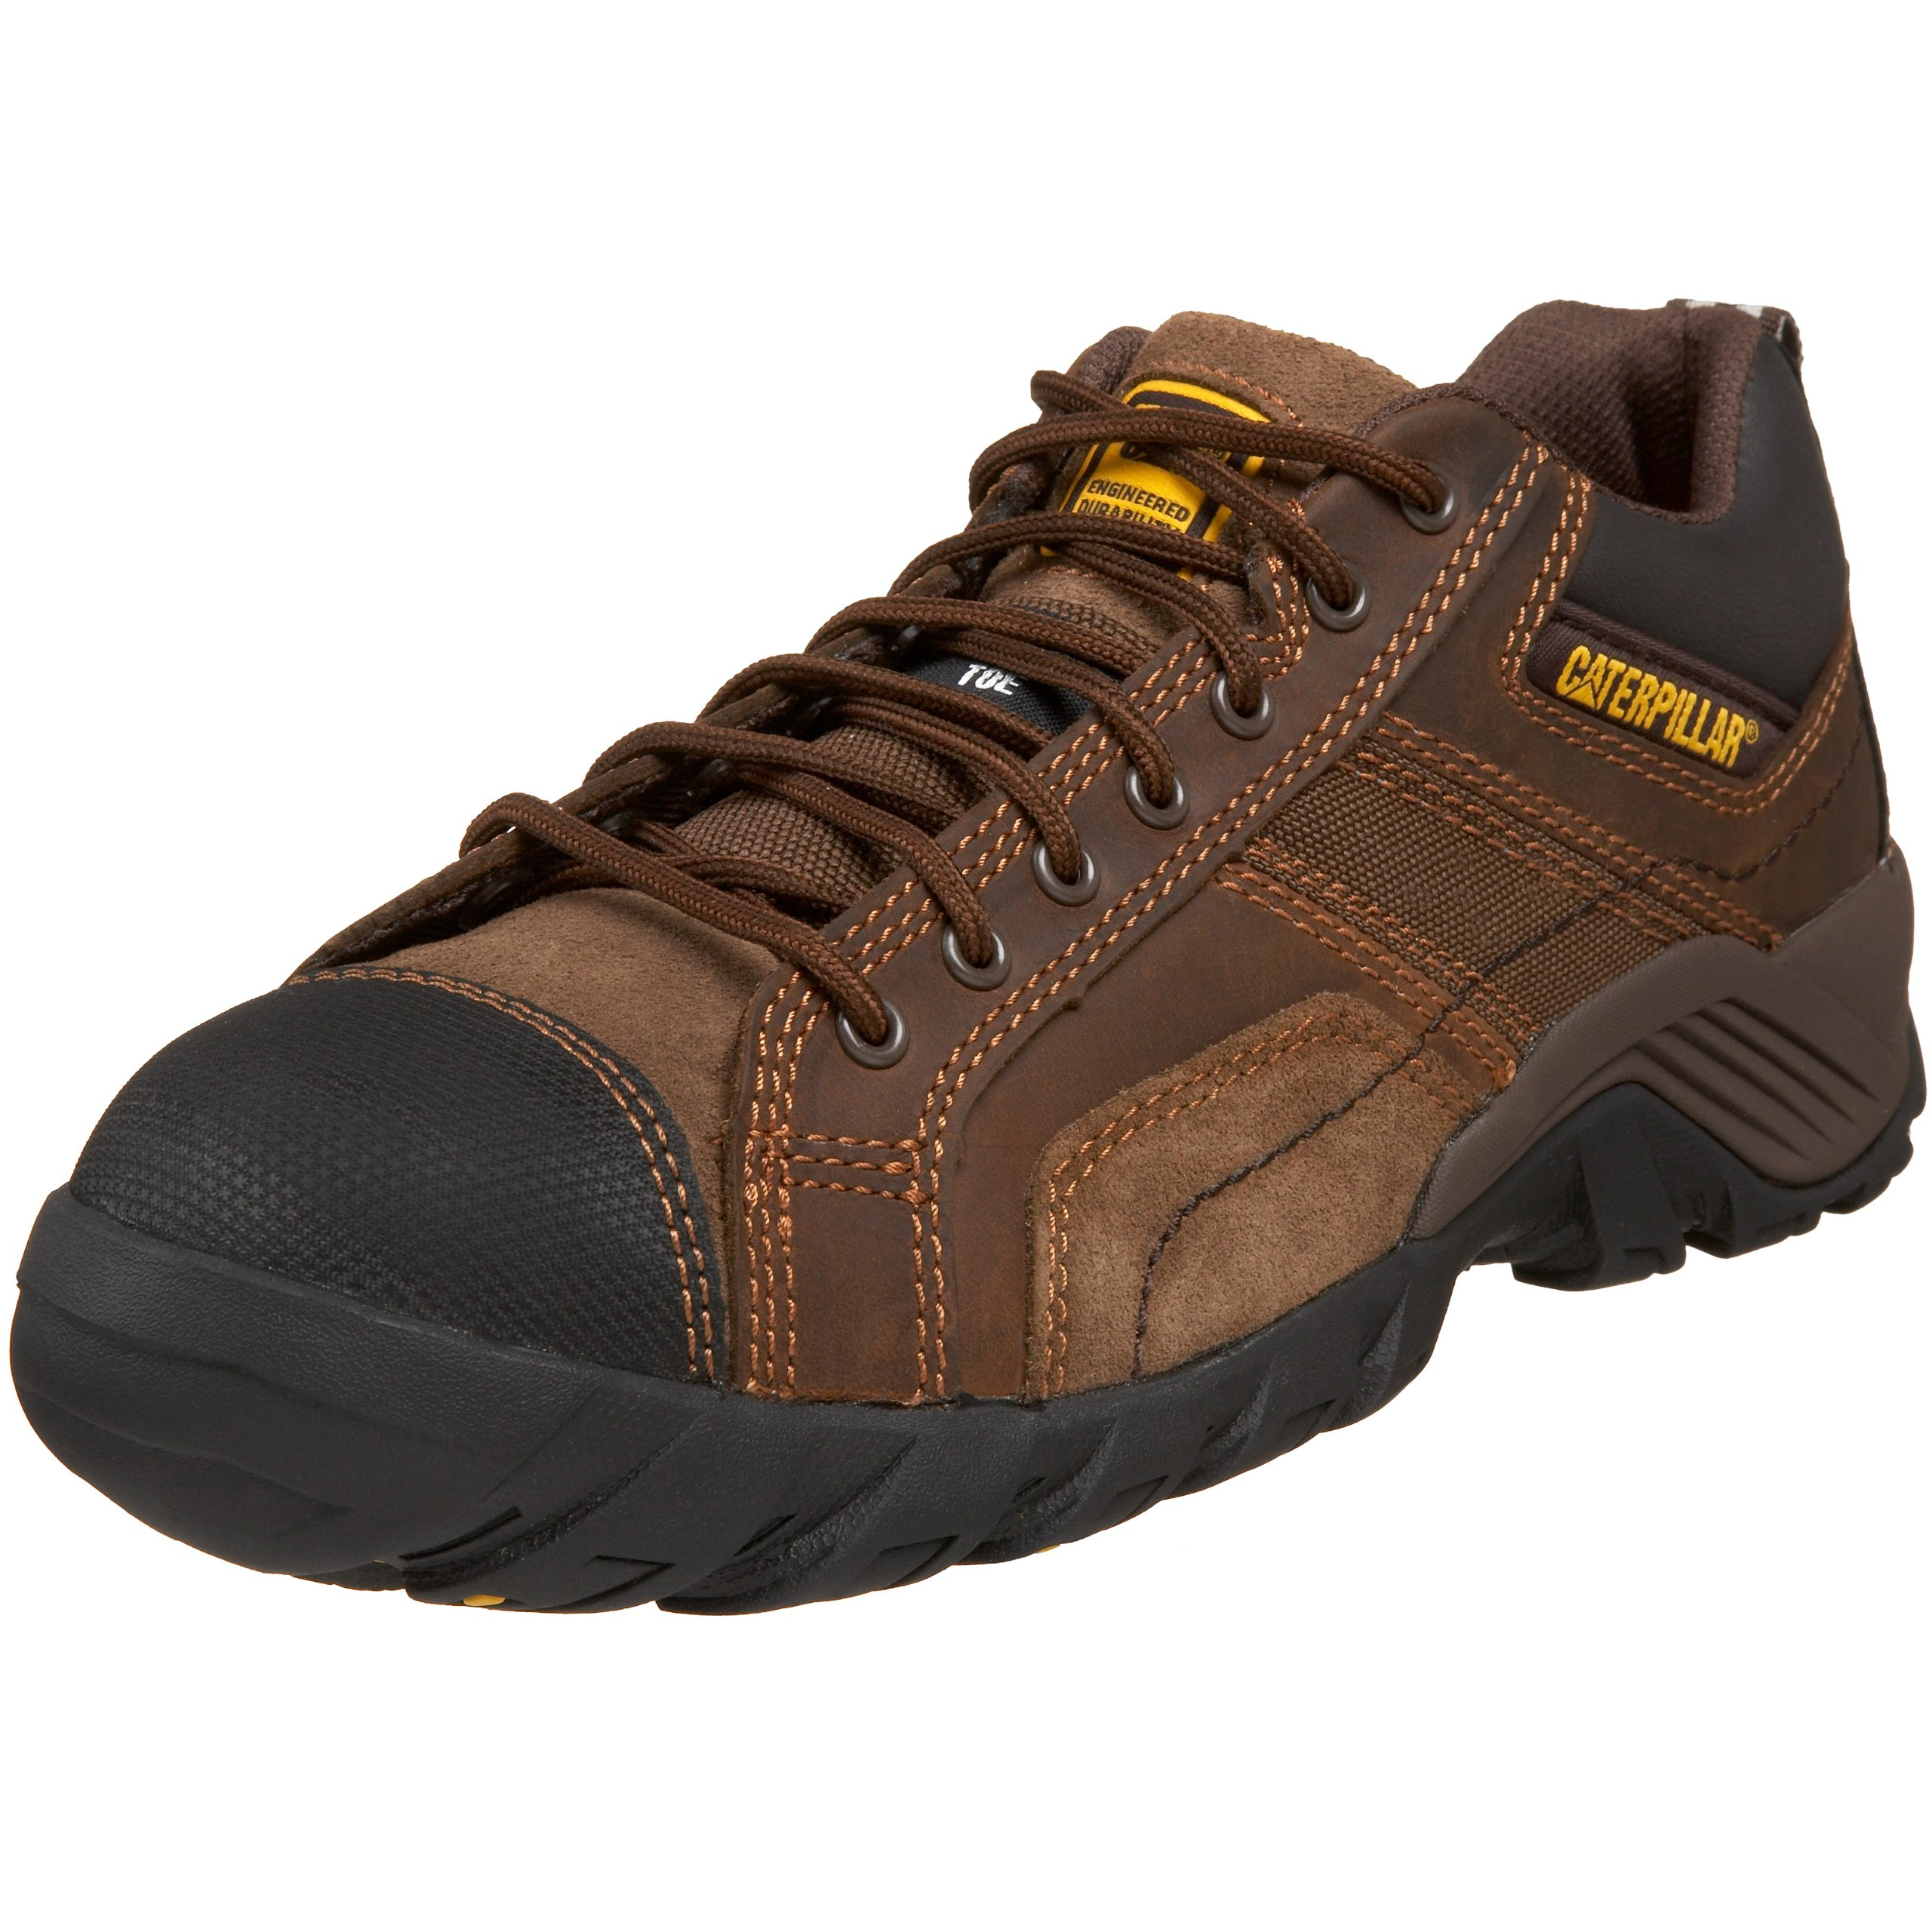 Caterpillar Men's Argon Composite-Toe Lace-Up Work Boot,Dark Brown,7.5 M US by Caterpillar